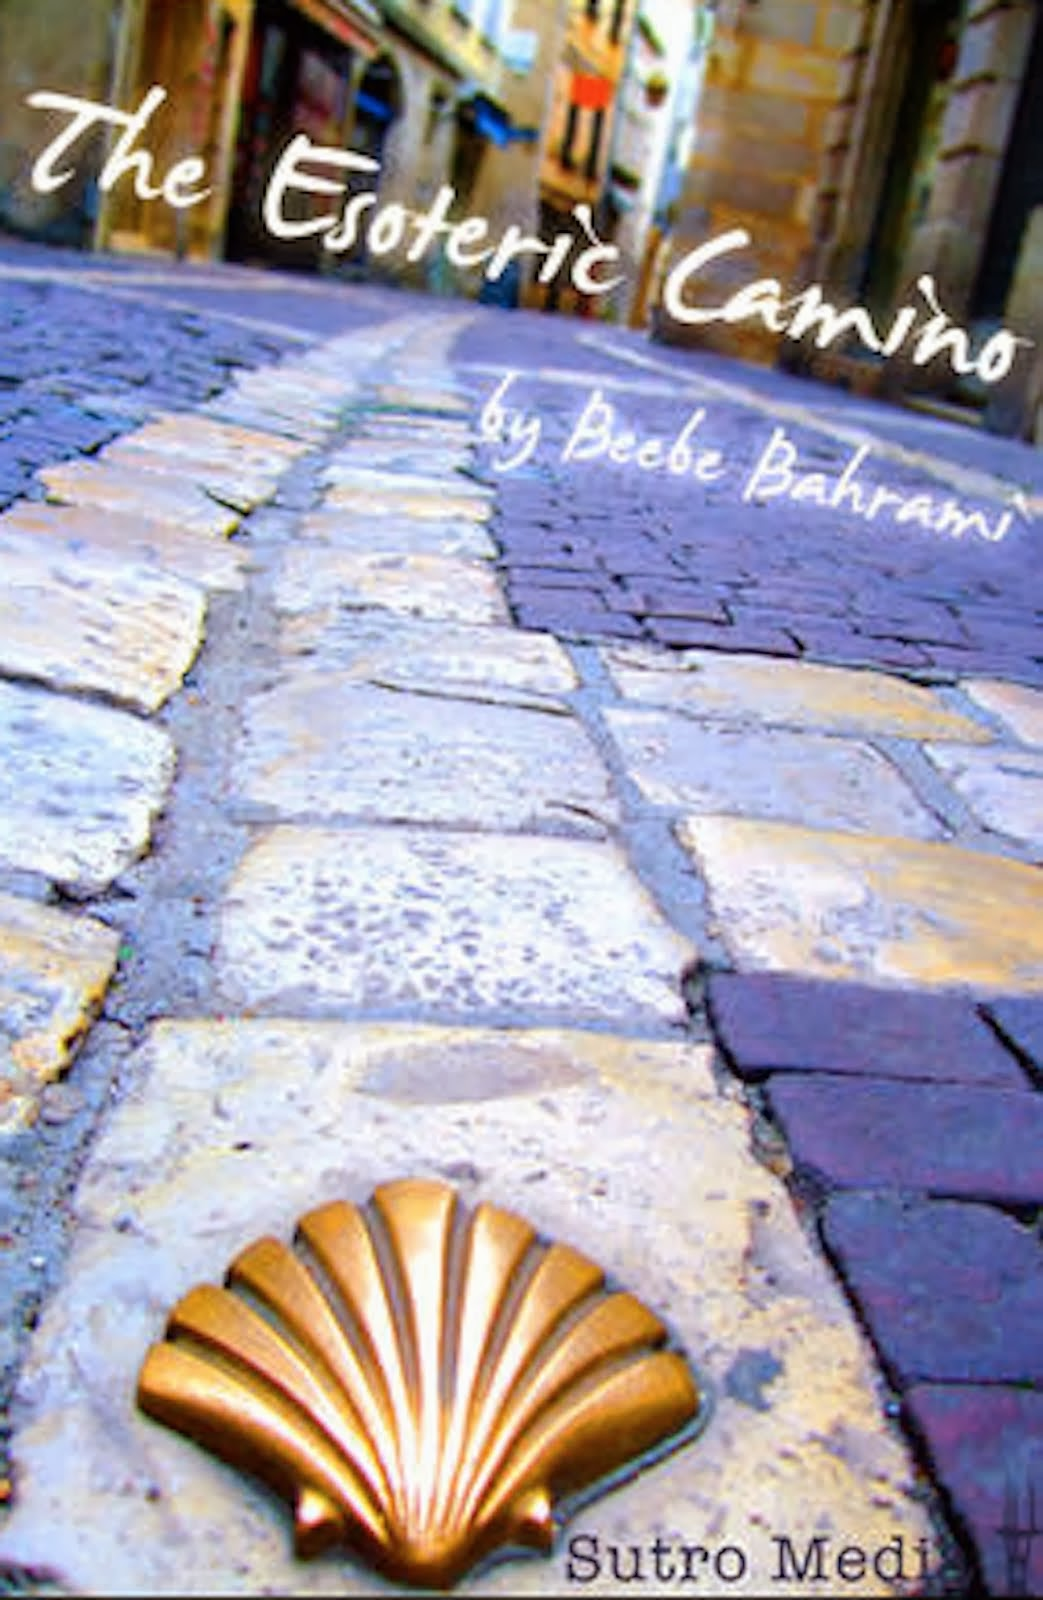 The Esoteric Camino France & Spain (app) by Beebe Bahrami